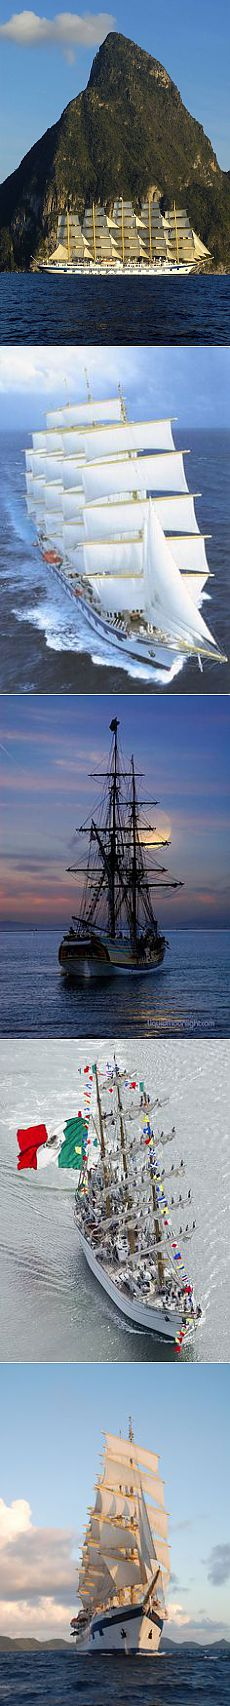 Tall Ship: Crucero a vela. | Tall Ships